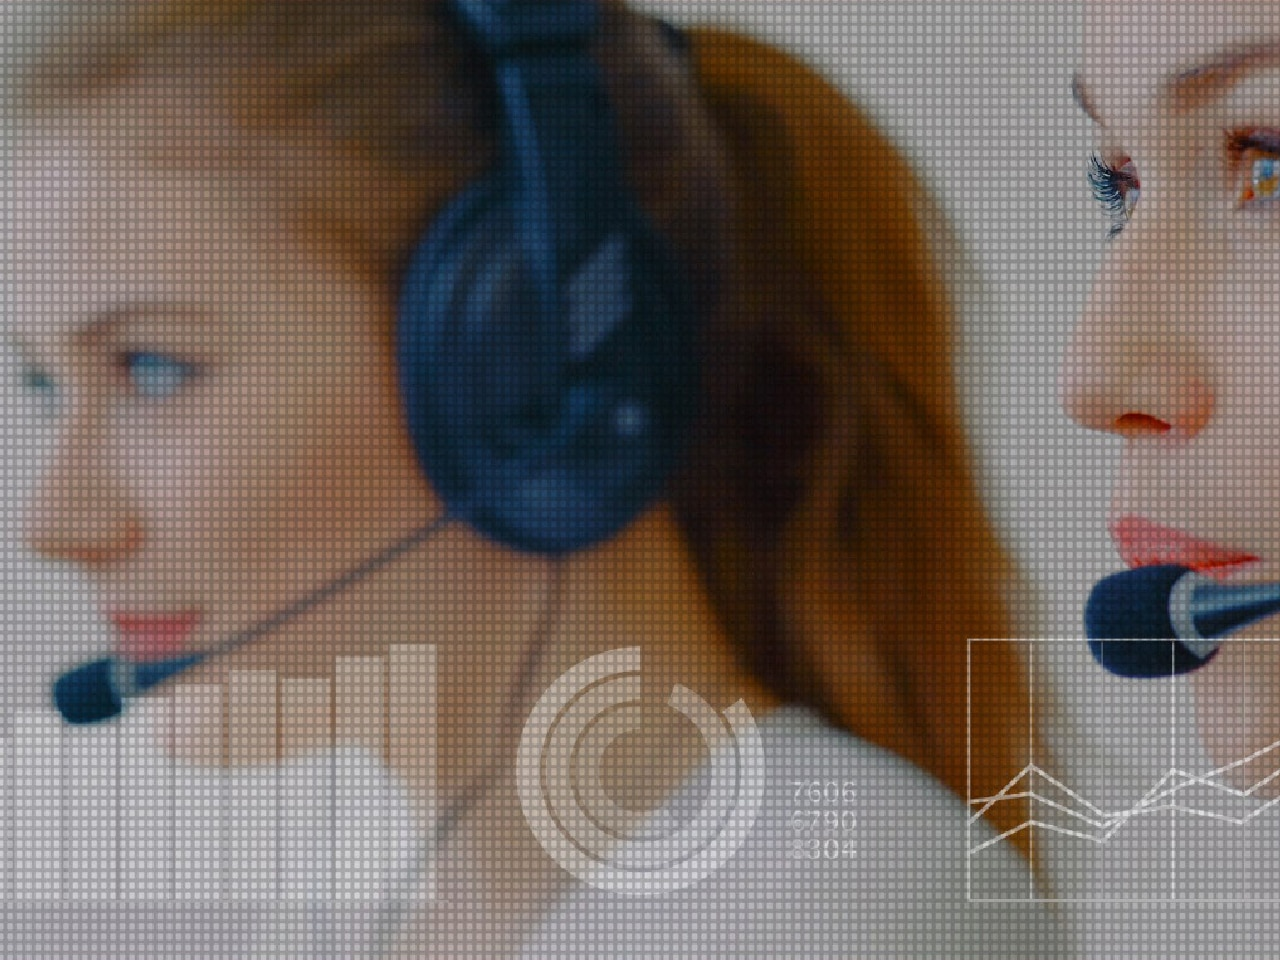 Optimizing the Contact Center Just Got Easier